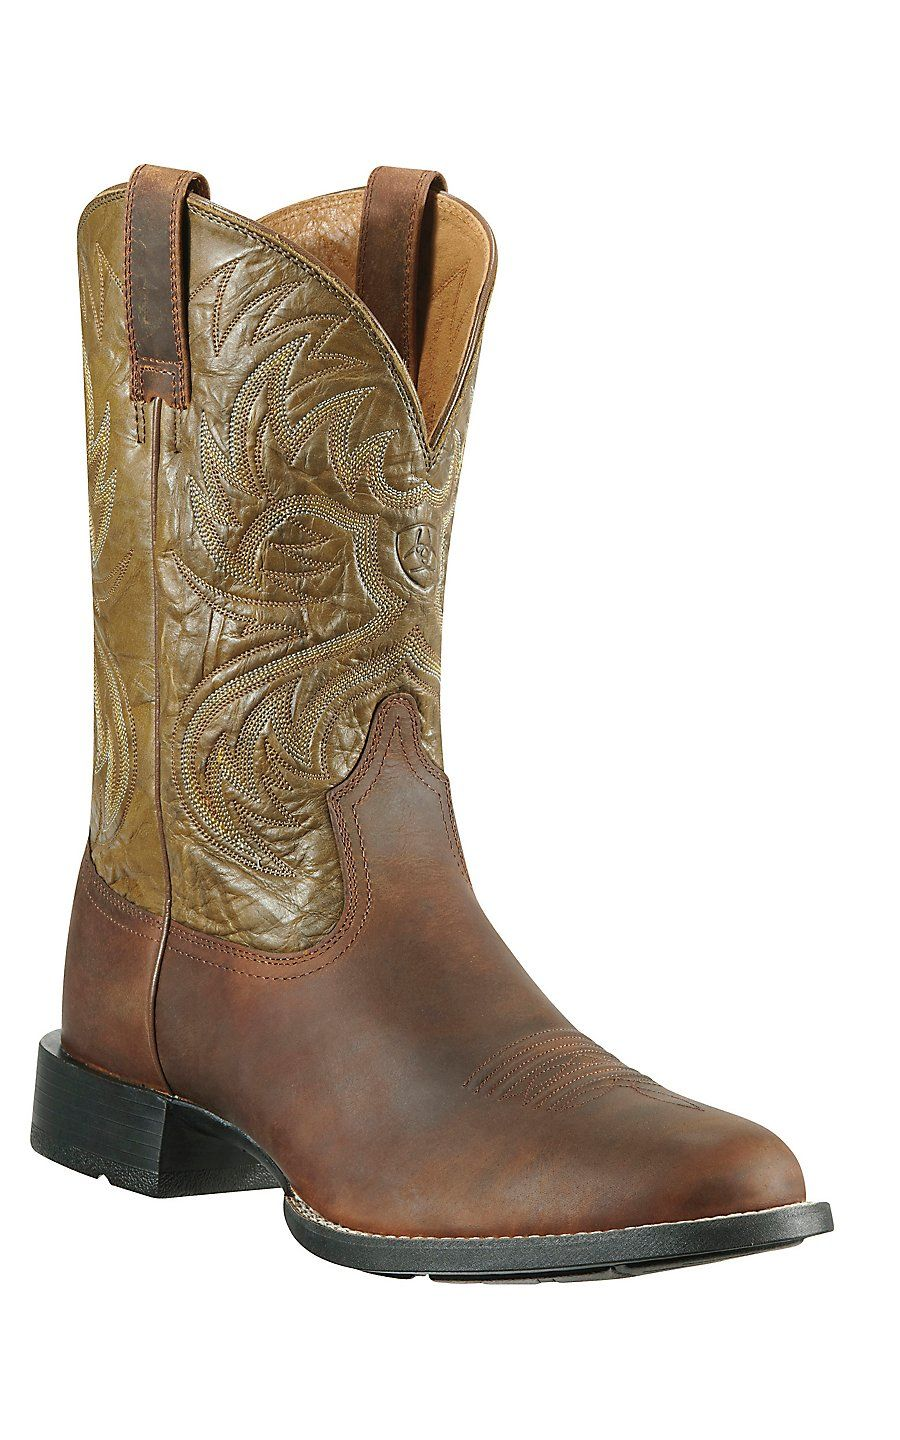 73862ac8ebe Ariat Heritage Horseman Men's Distressed Brown with Army Green ...